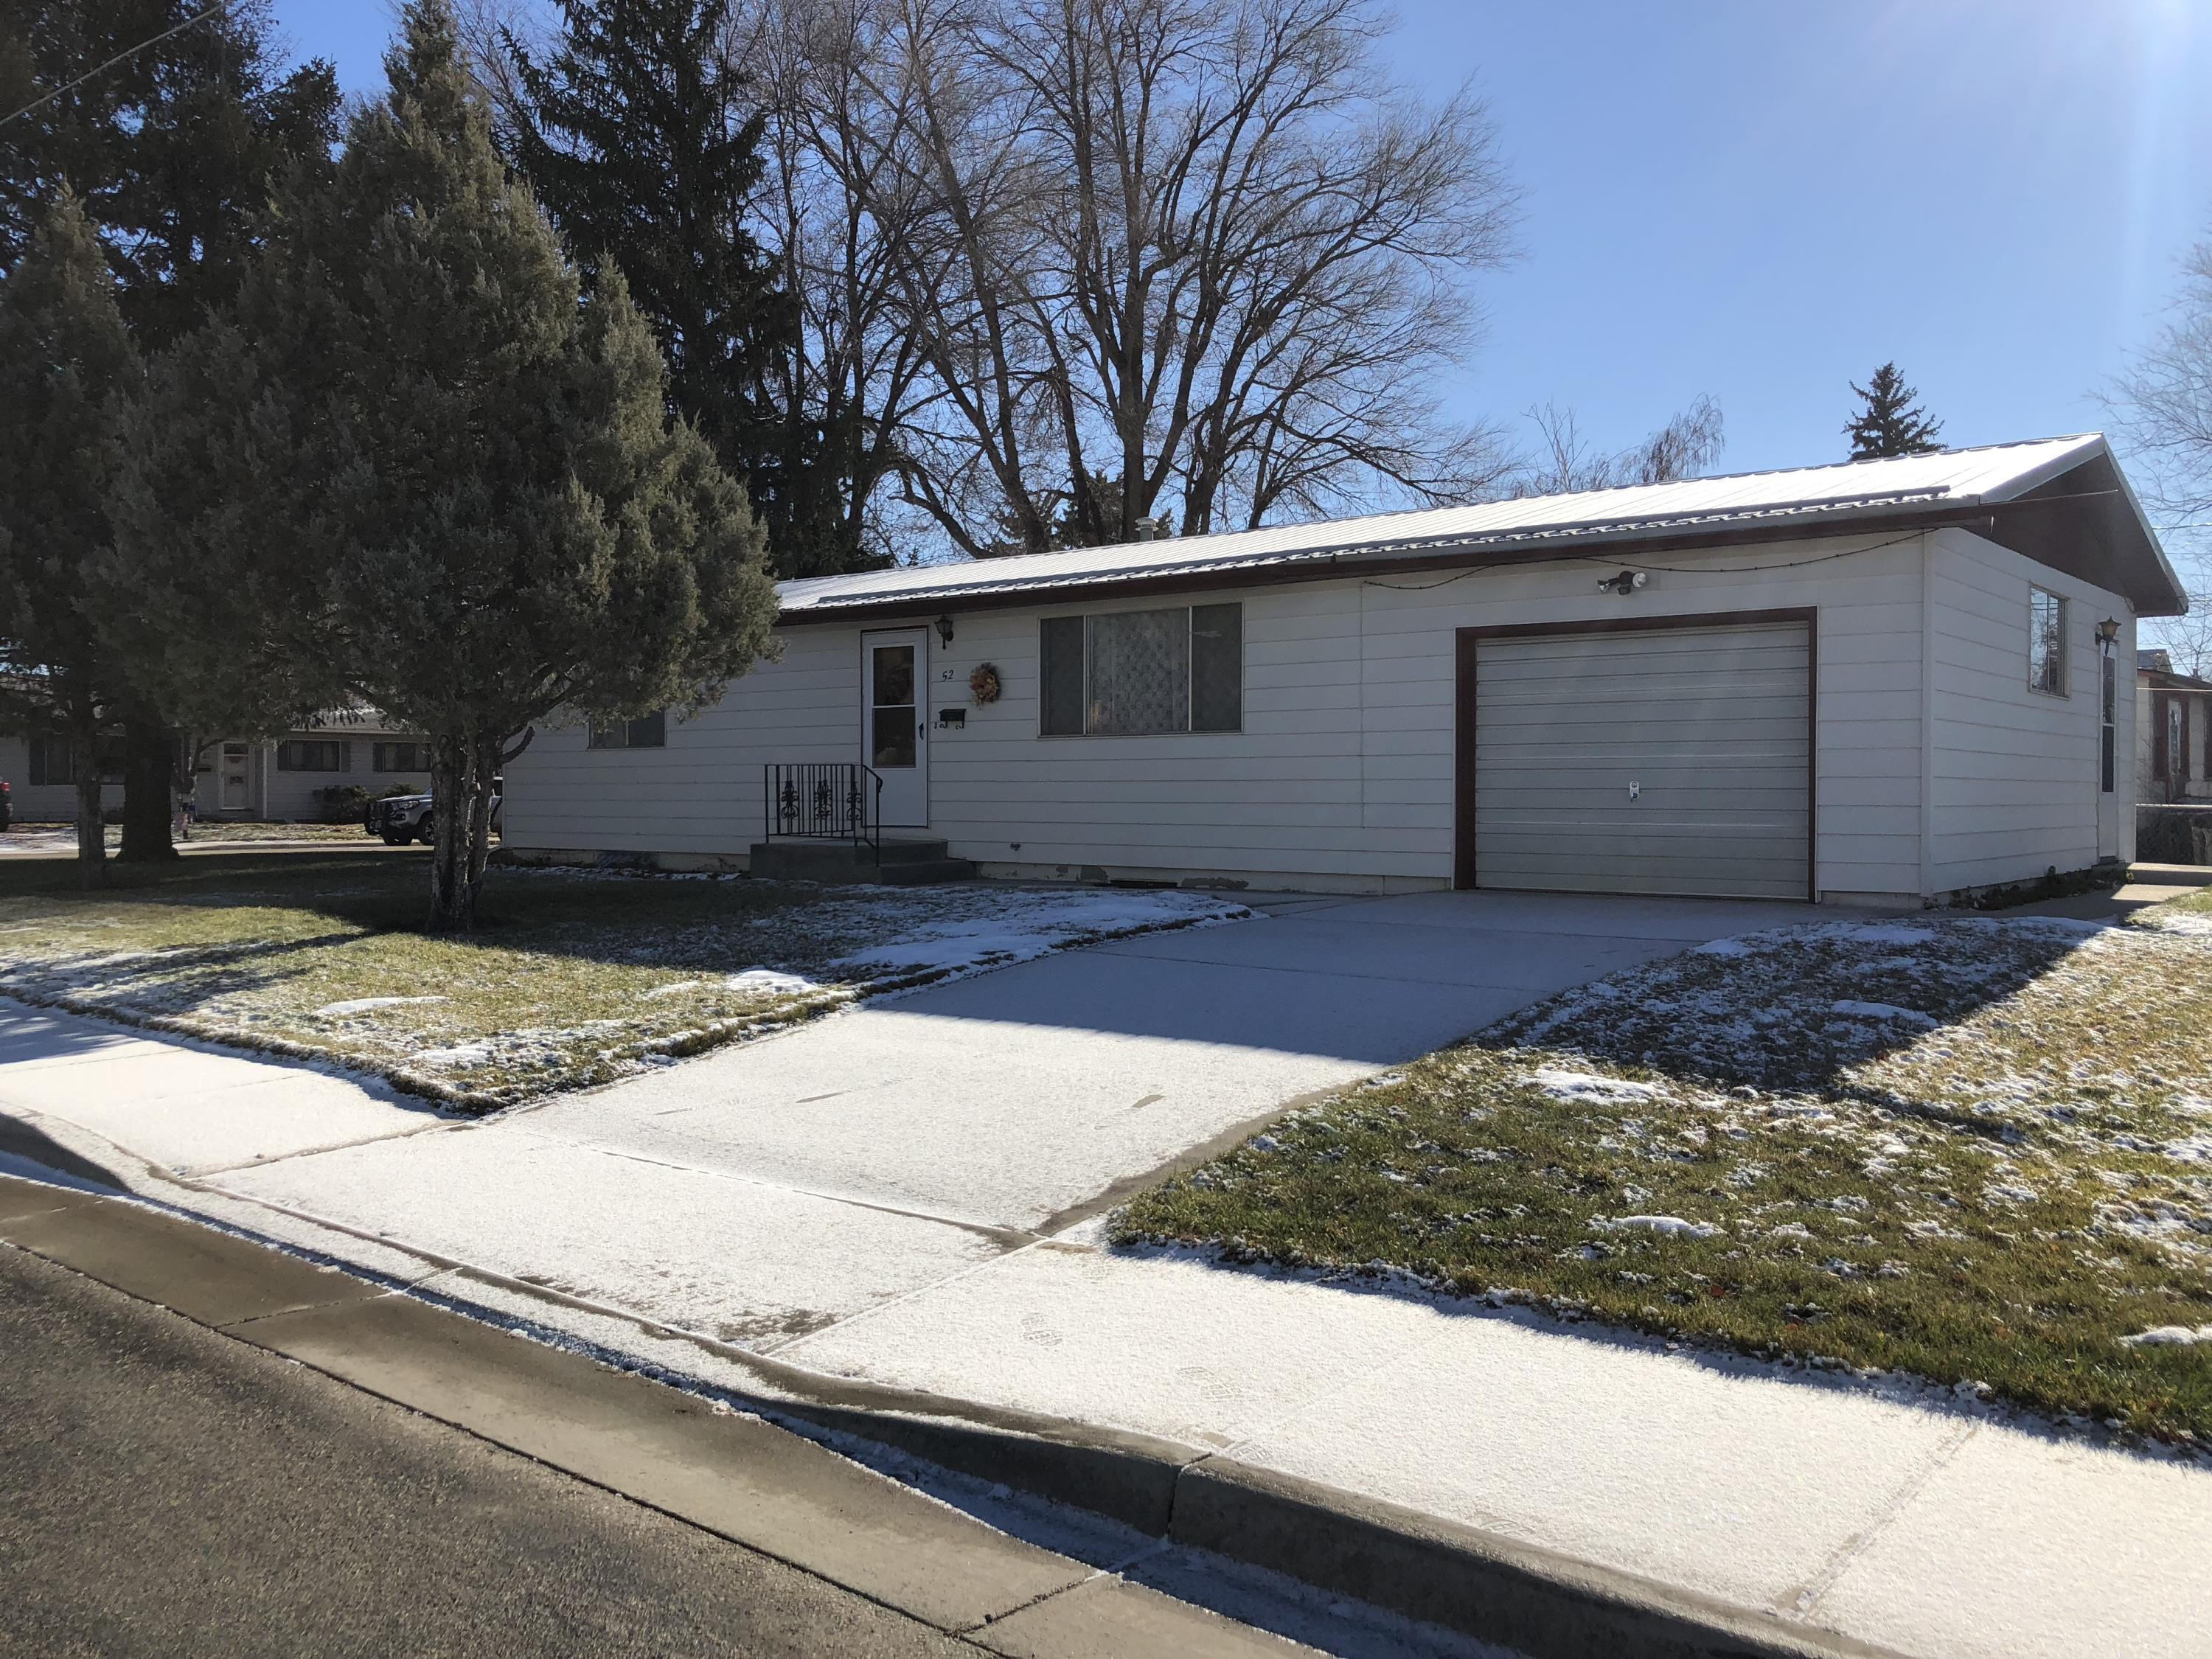 52 10th Street, Sheridan, Wyoming 82801, 2 Bedrooms Bedrooms, ,1 BathroomBathrooms,Residential,For Sale,10th,18-1179